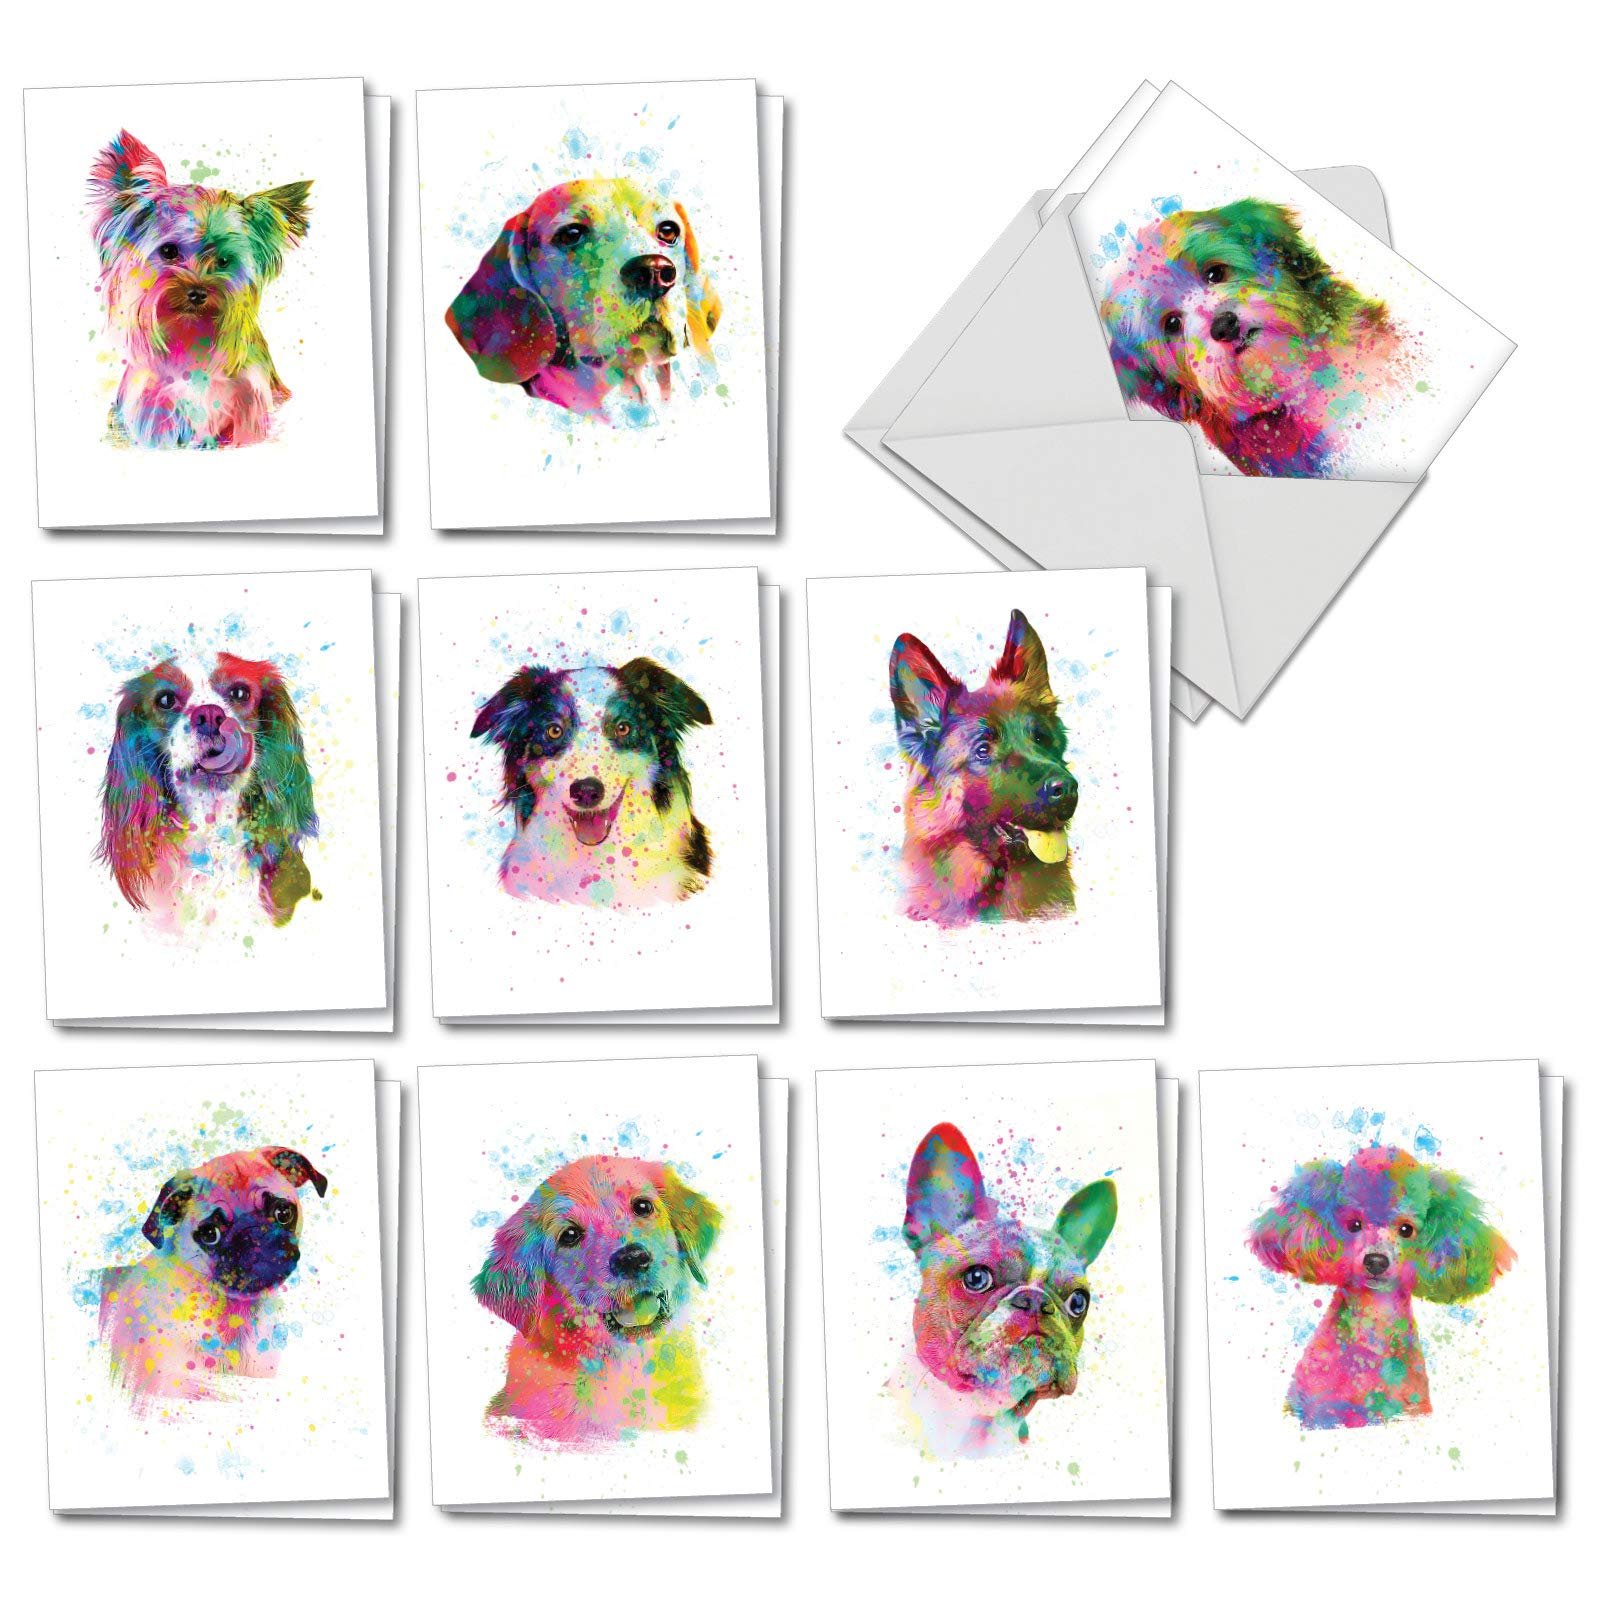 Funky Rainbow Dogs - 20 Blank All Occasion Cards with Envelopes (4 x 5.12 Inch) - Watercolor Painted Dogs, Pet Animal Note Cards - Assorted Boxed Notecard Set (10 Designs, 2 Each) AM7162OCB-B2x10